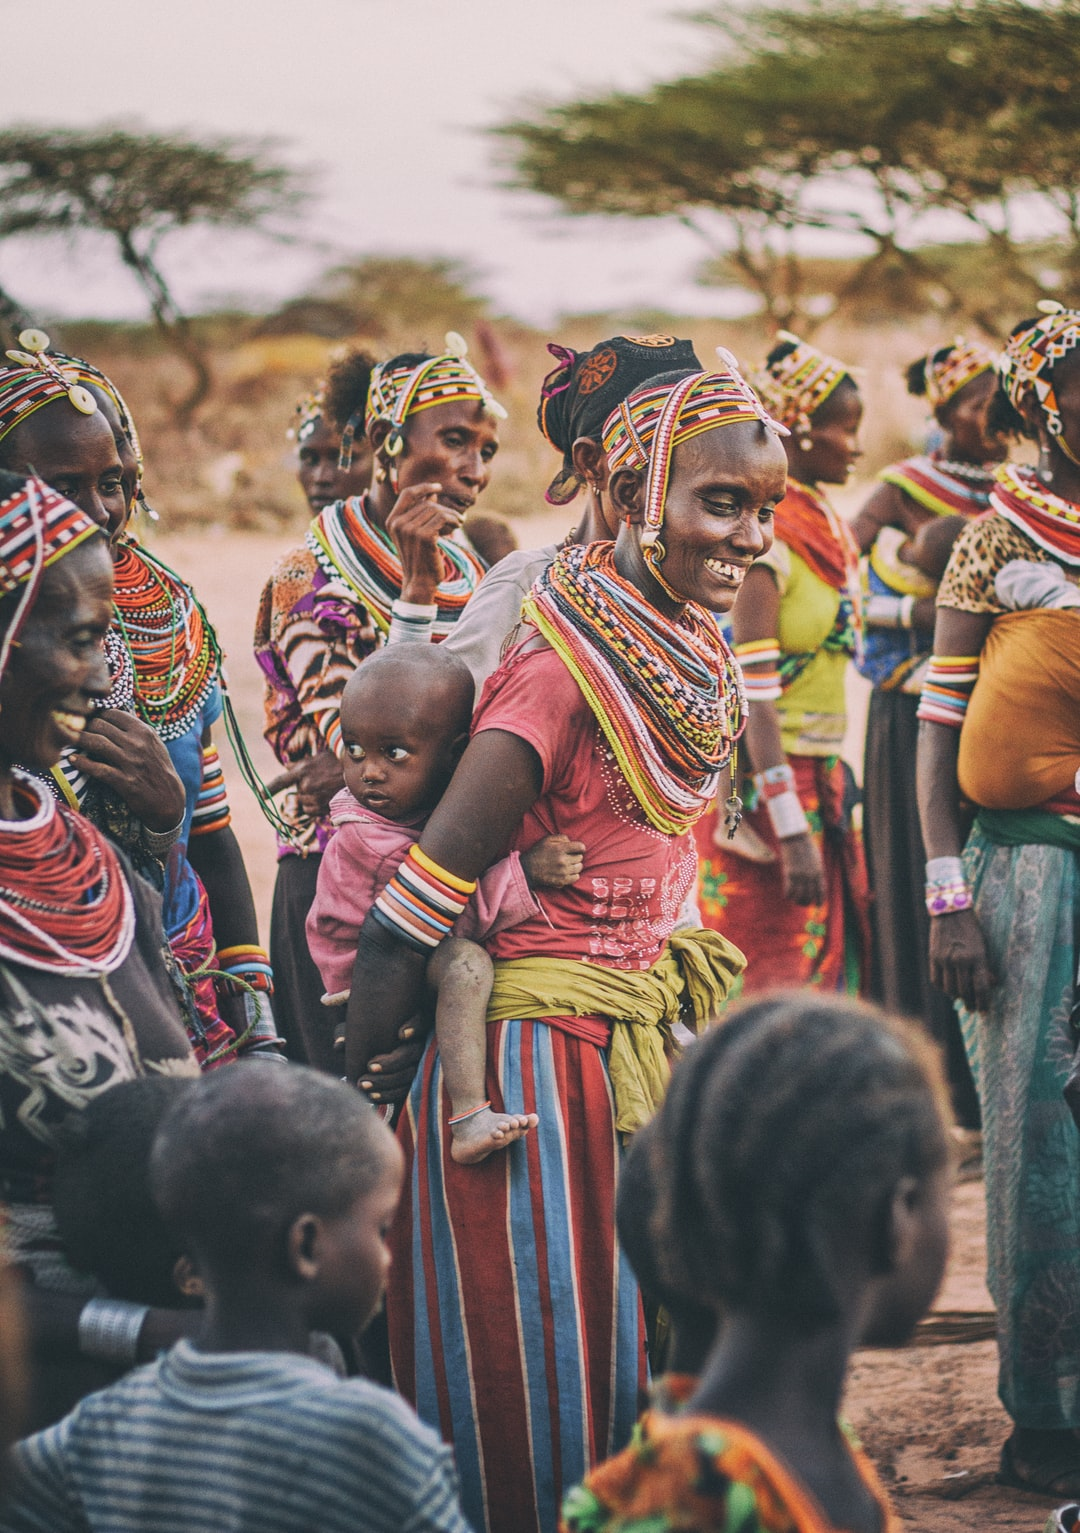 Took this on a trip to Kargi, a remote nomadic settlement in Kenya. It's been a while since I got to experience a people so constantly happy and full of joy as the people of here.